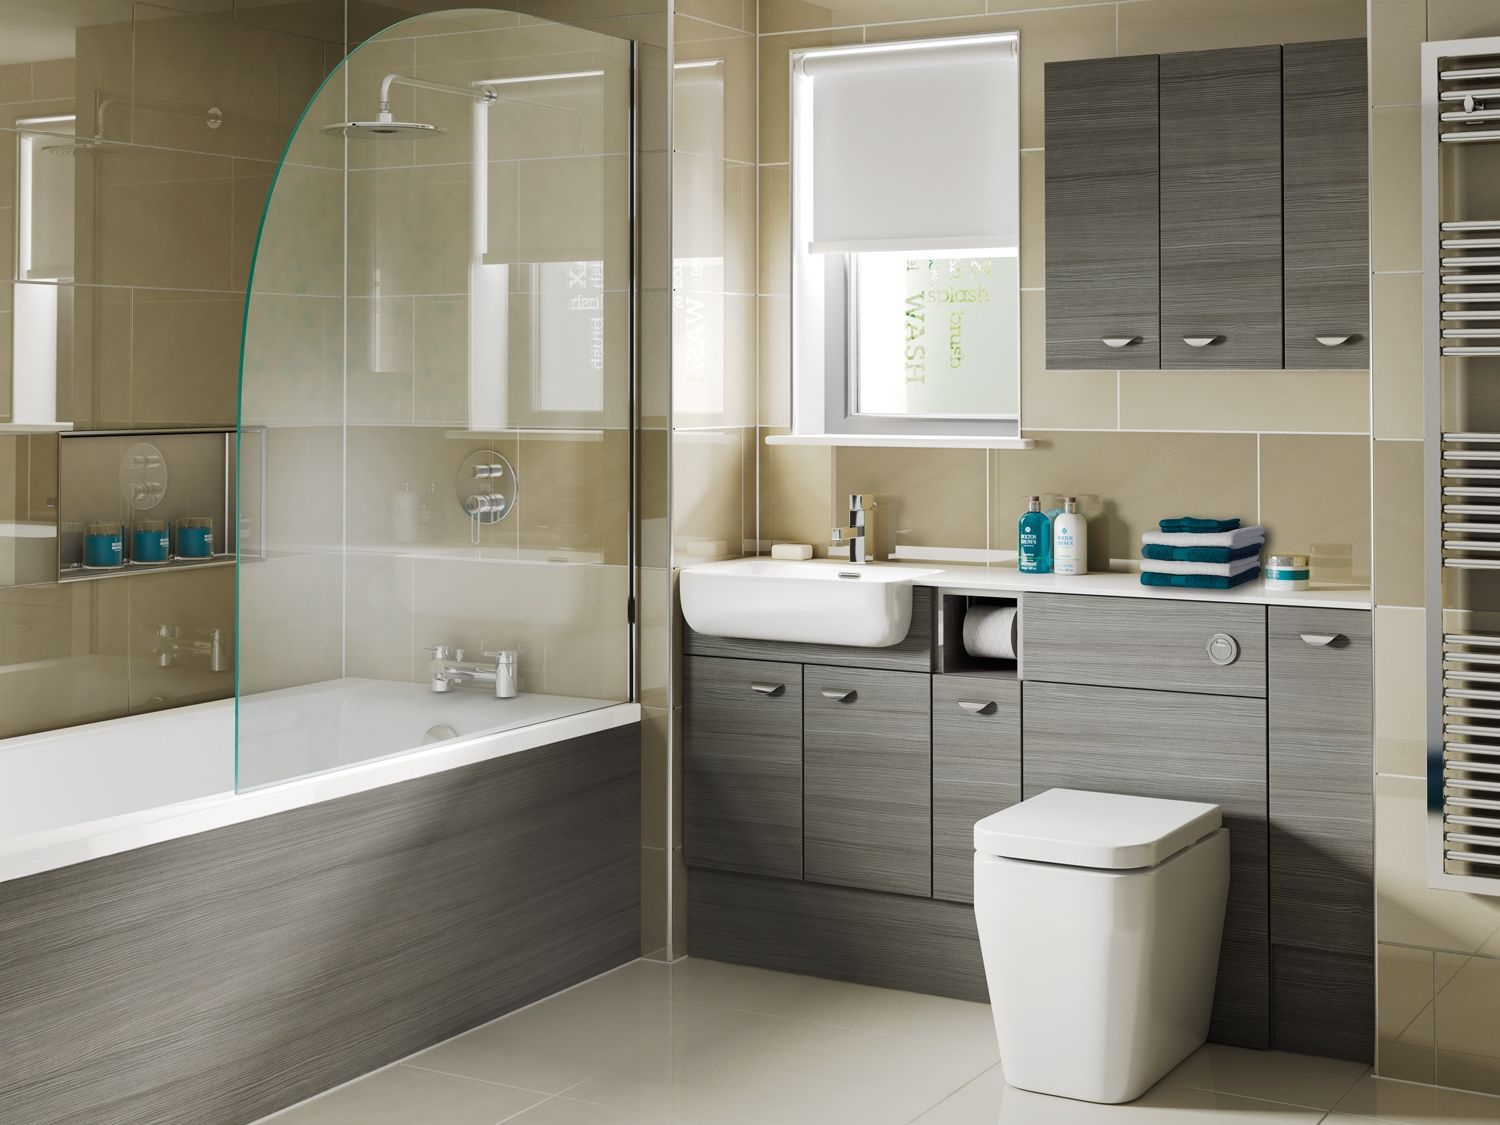 Similar Basin Counter To Ground Floor Cloakroom Eco Bathroom Basin within dimensions 1500 X 1125